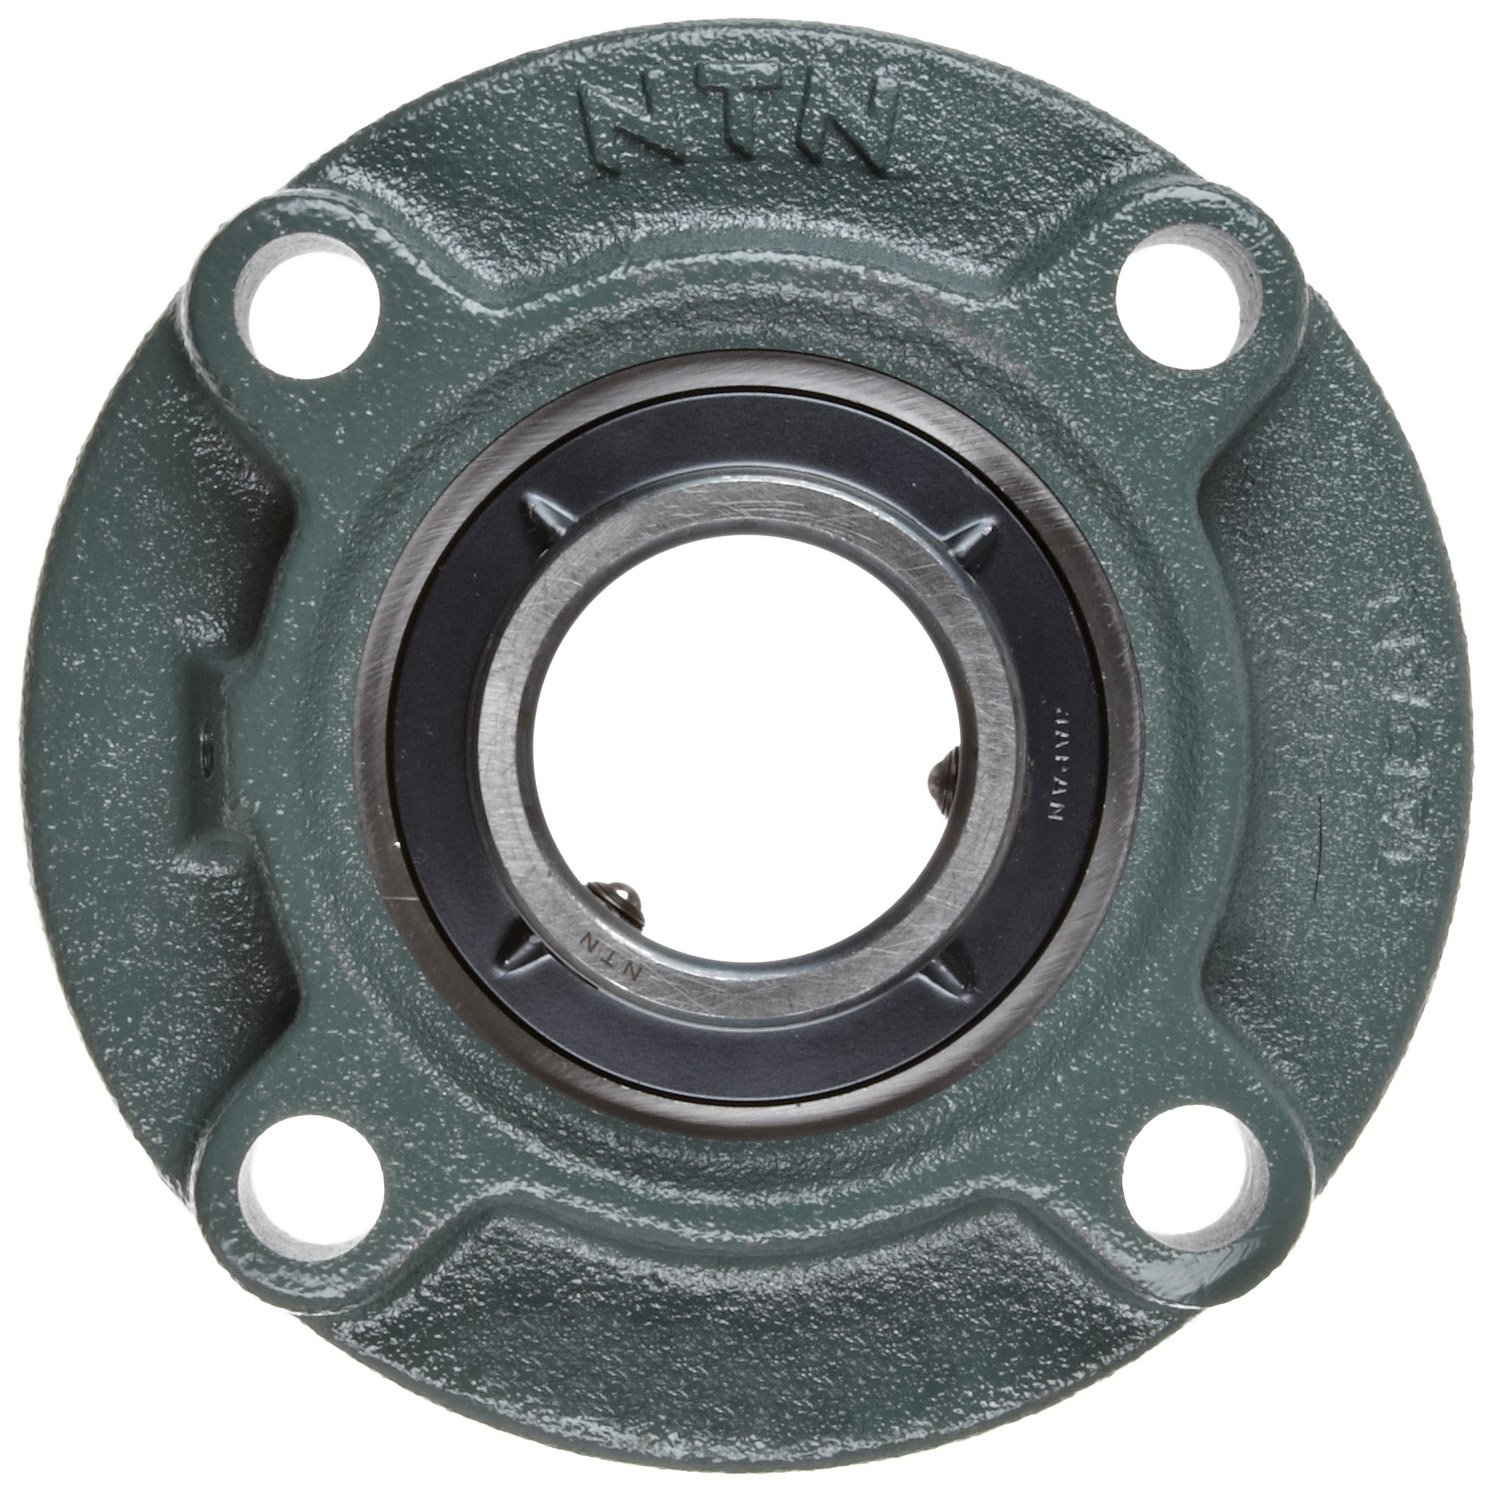 4 Bolts 5-7//16 Bolt Hole Spacing Width NTN UCFC210-200D1 Light Duty Piloted Flange Bearing Cast Iron 2 Bore 6-1//2 Height Regreasable Setscrew Lock Contact and Flinger Seals